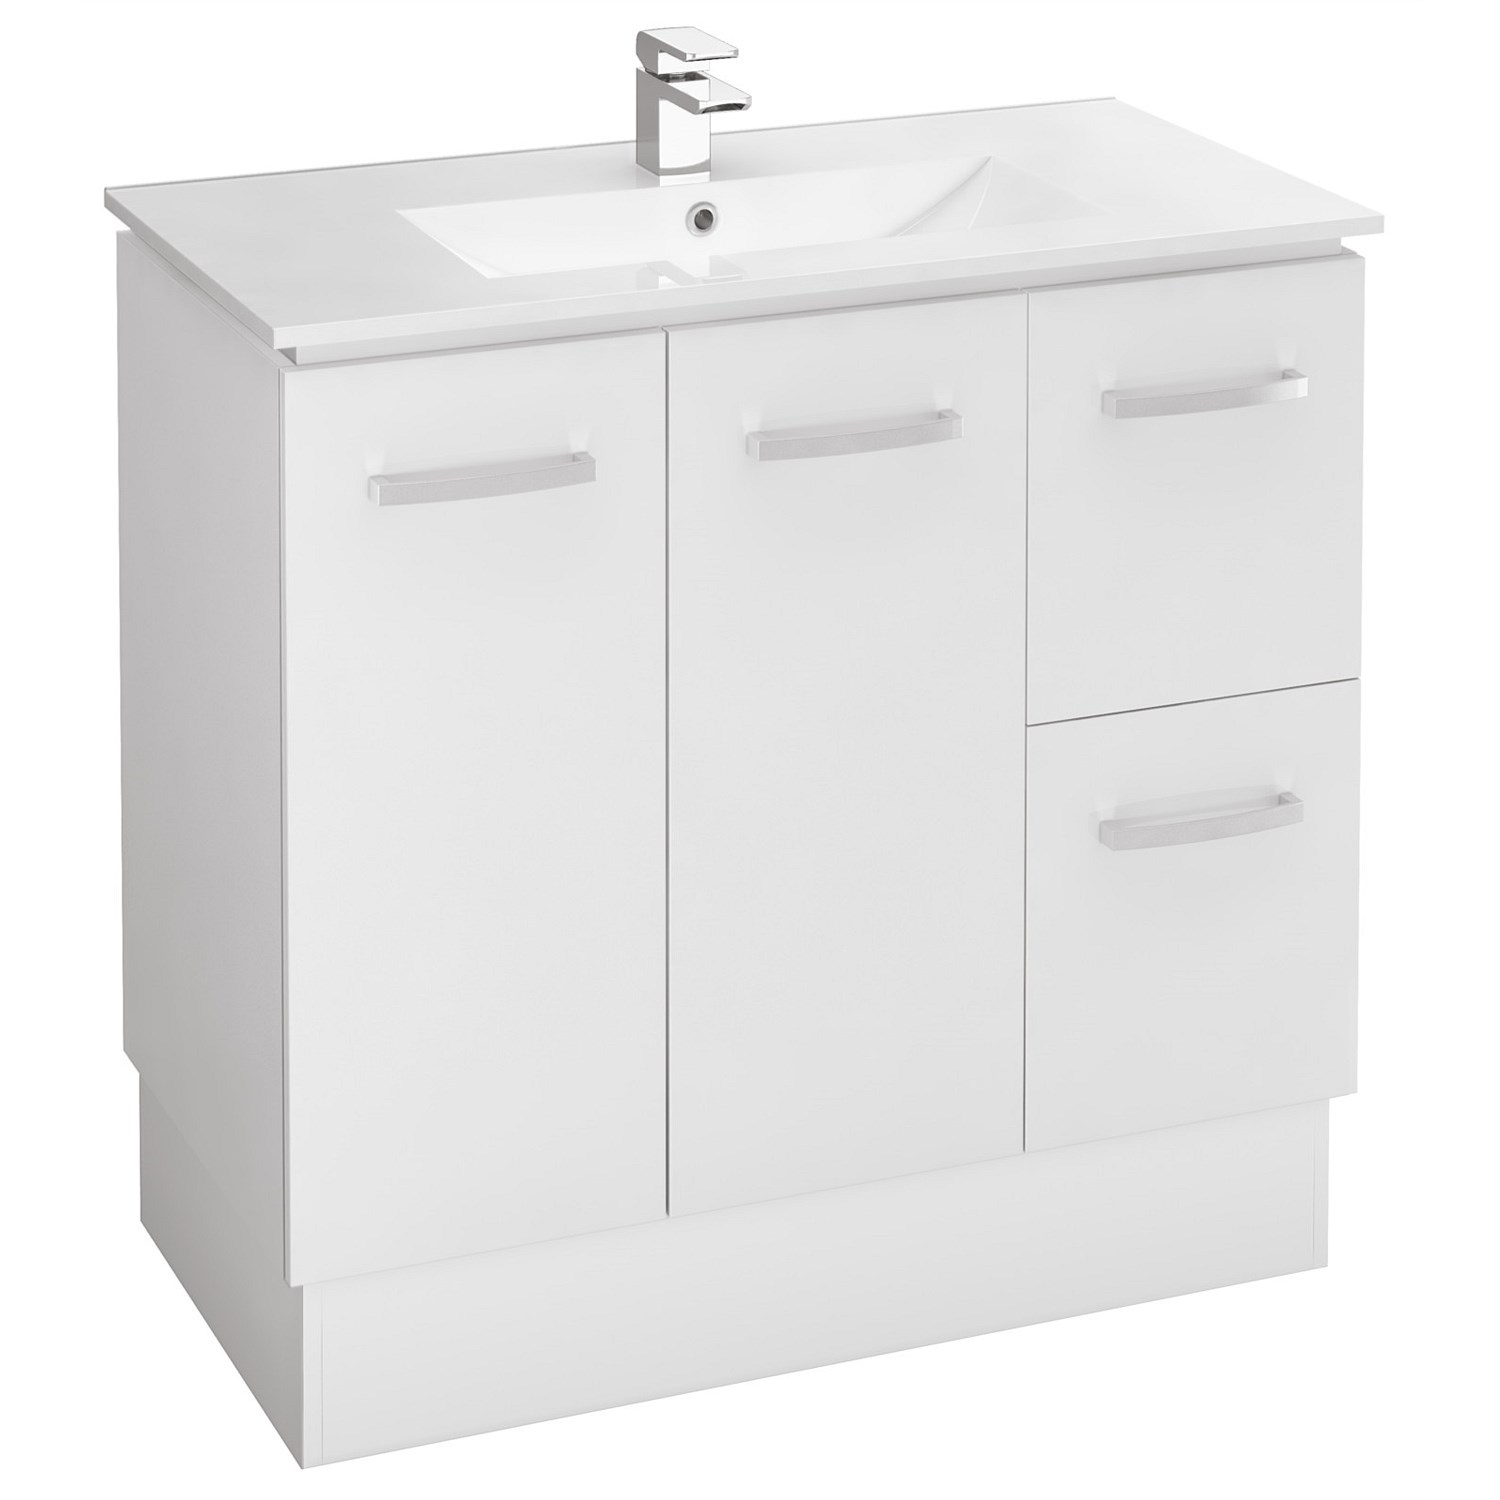 LeVivi Devon 900mm Vanity